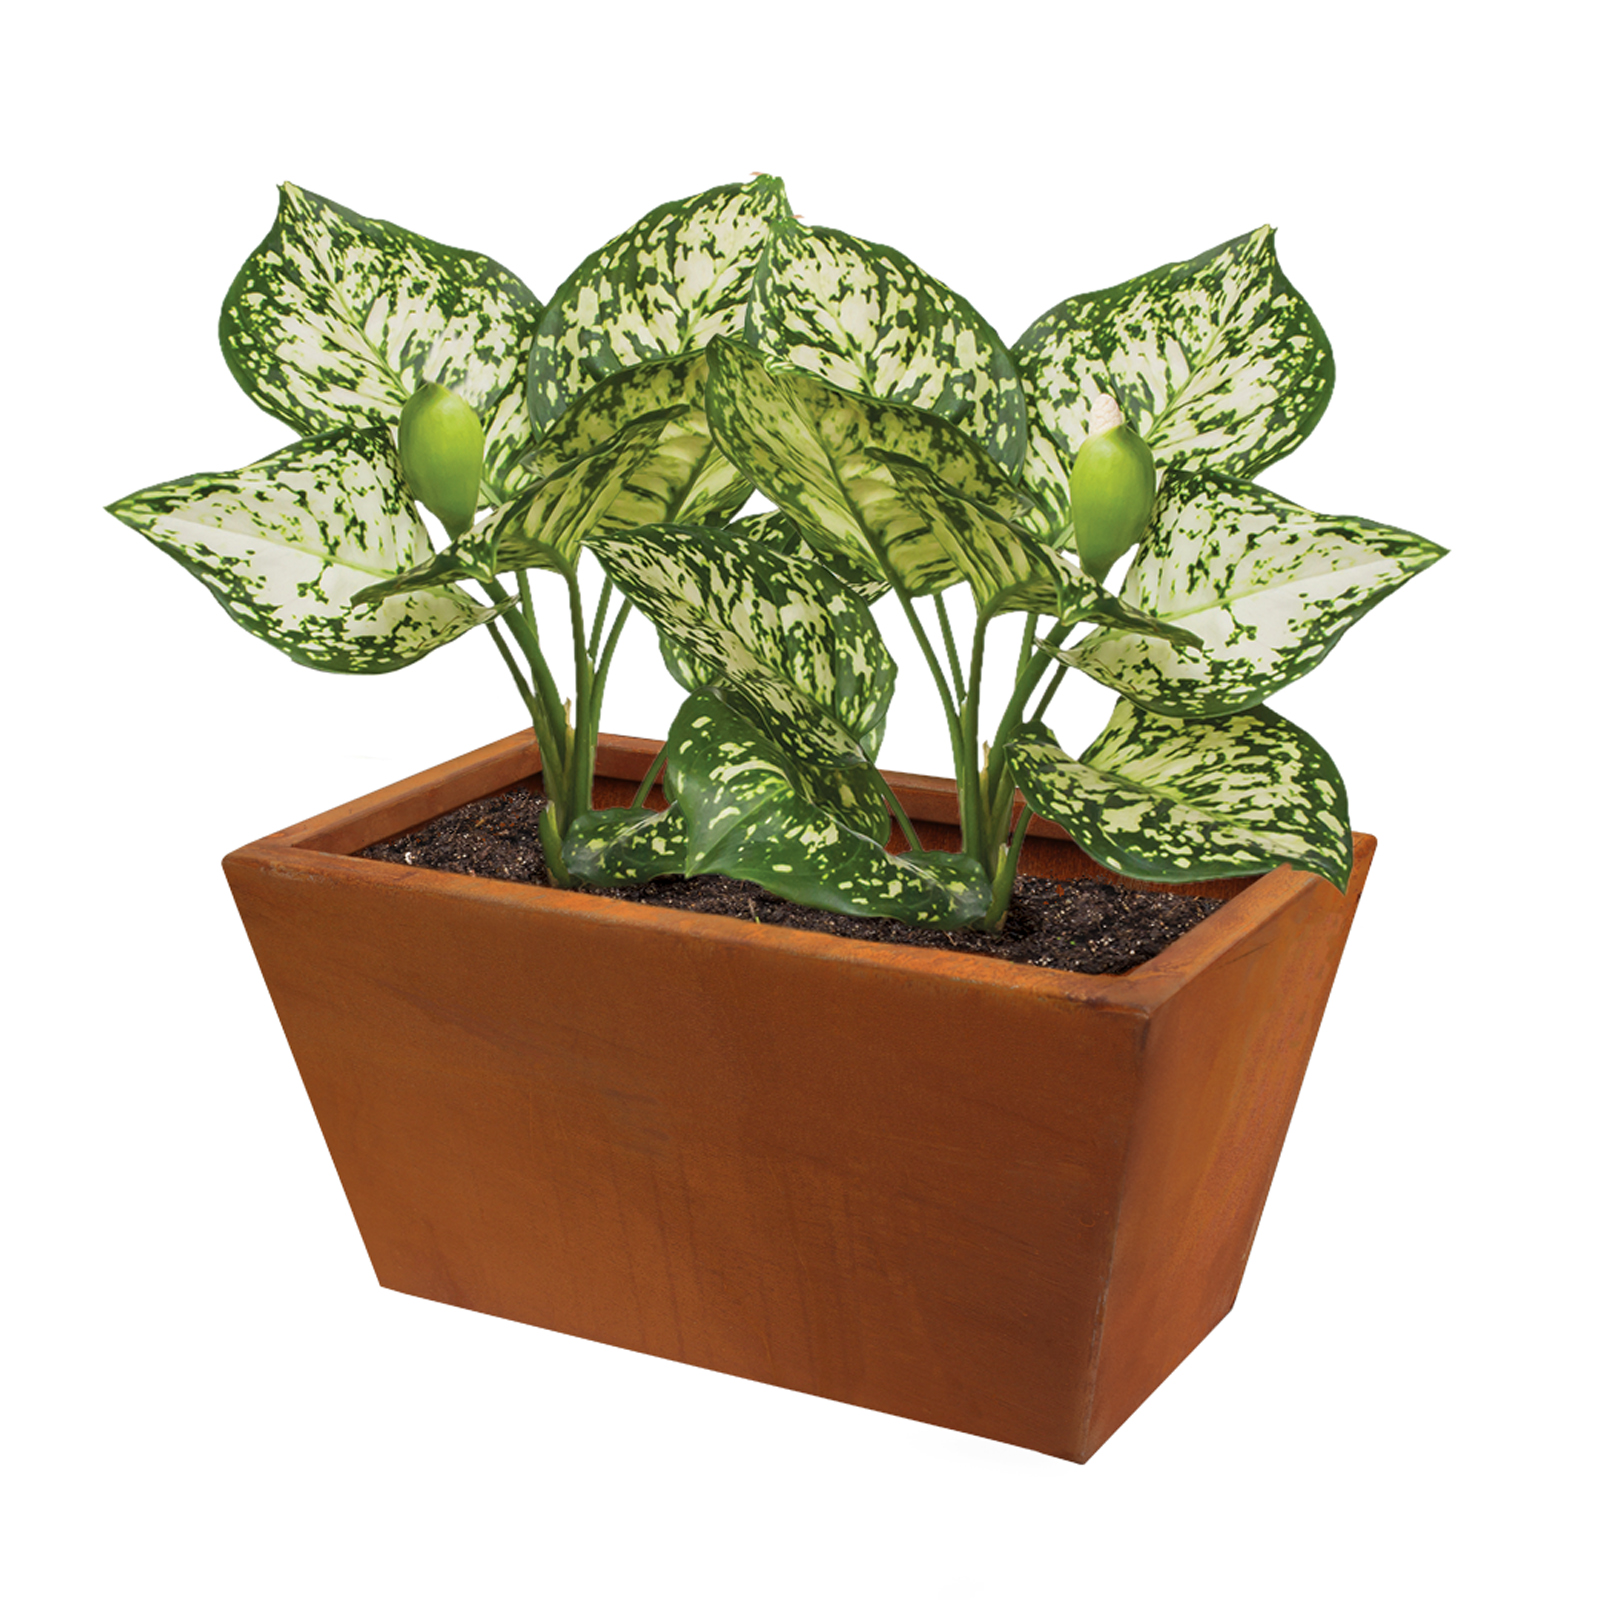 18482 copa planter with plants 400x230x200